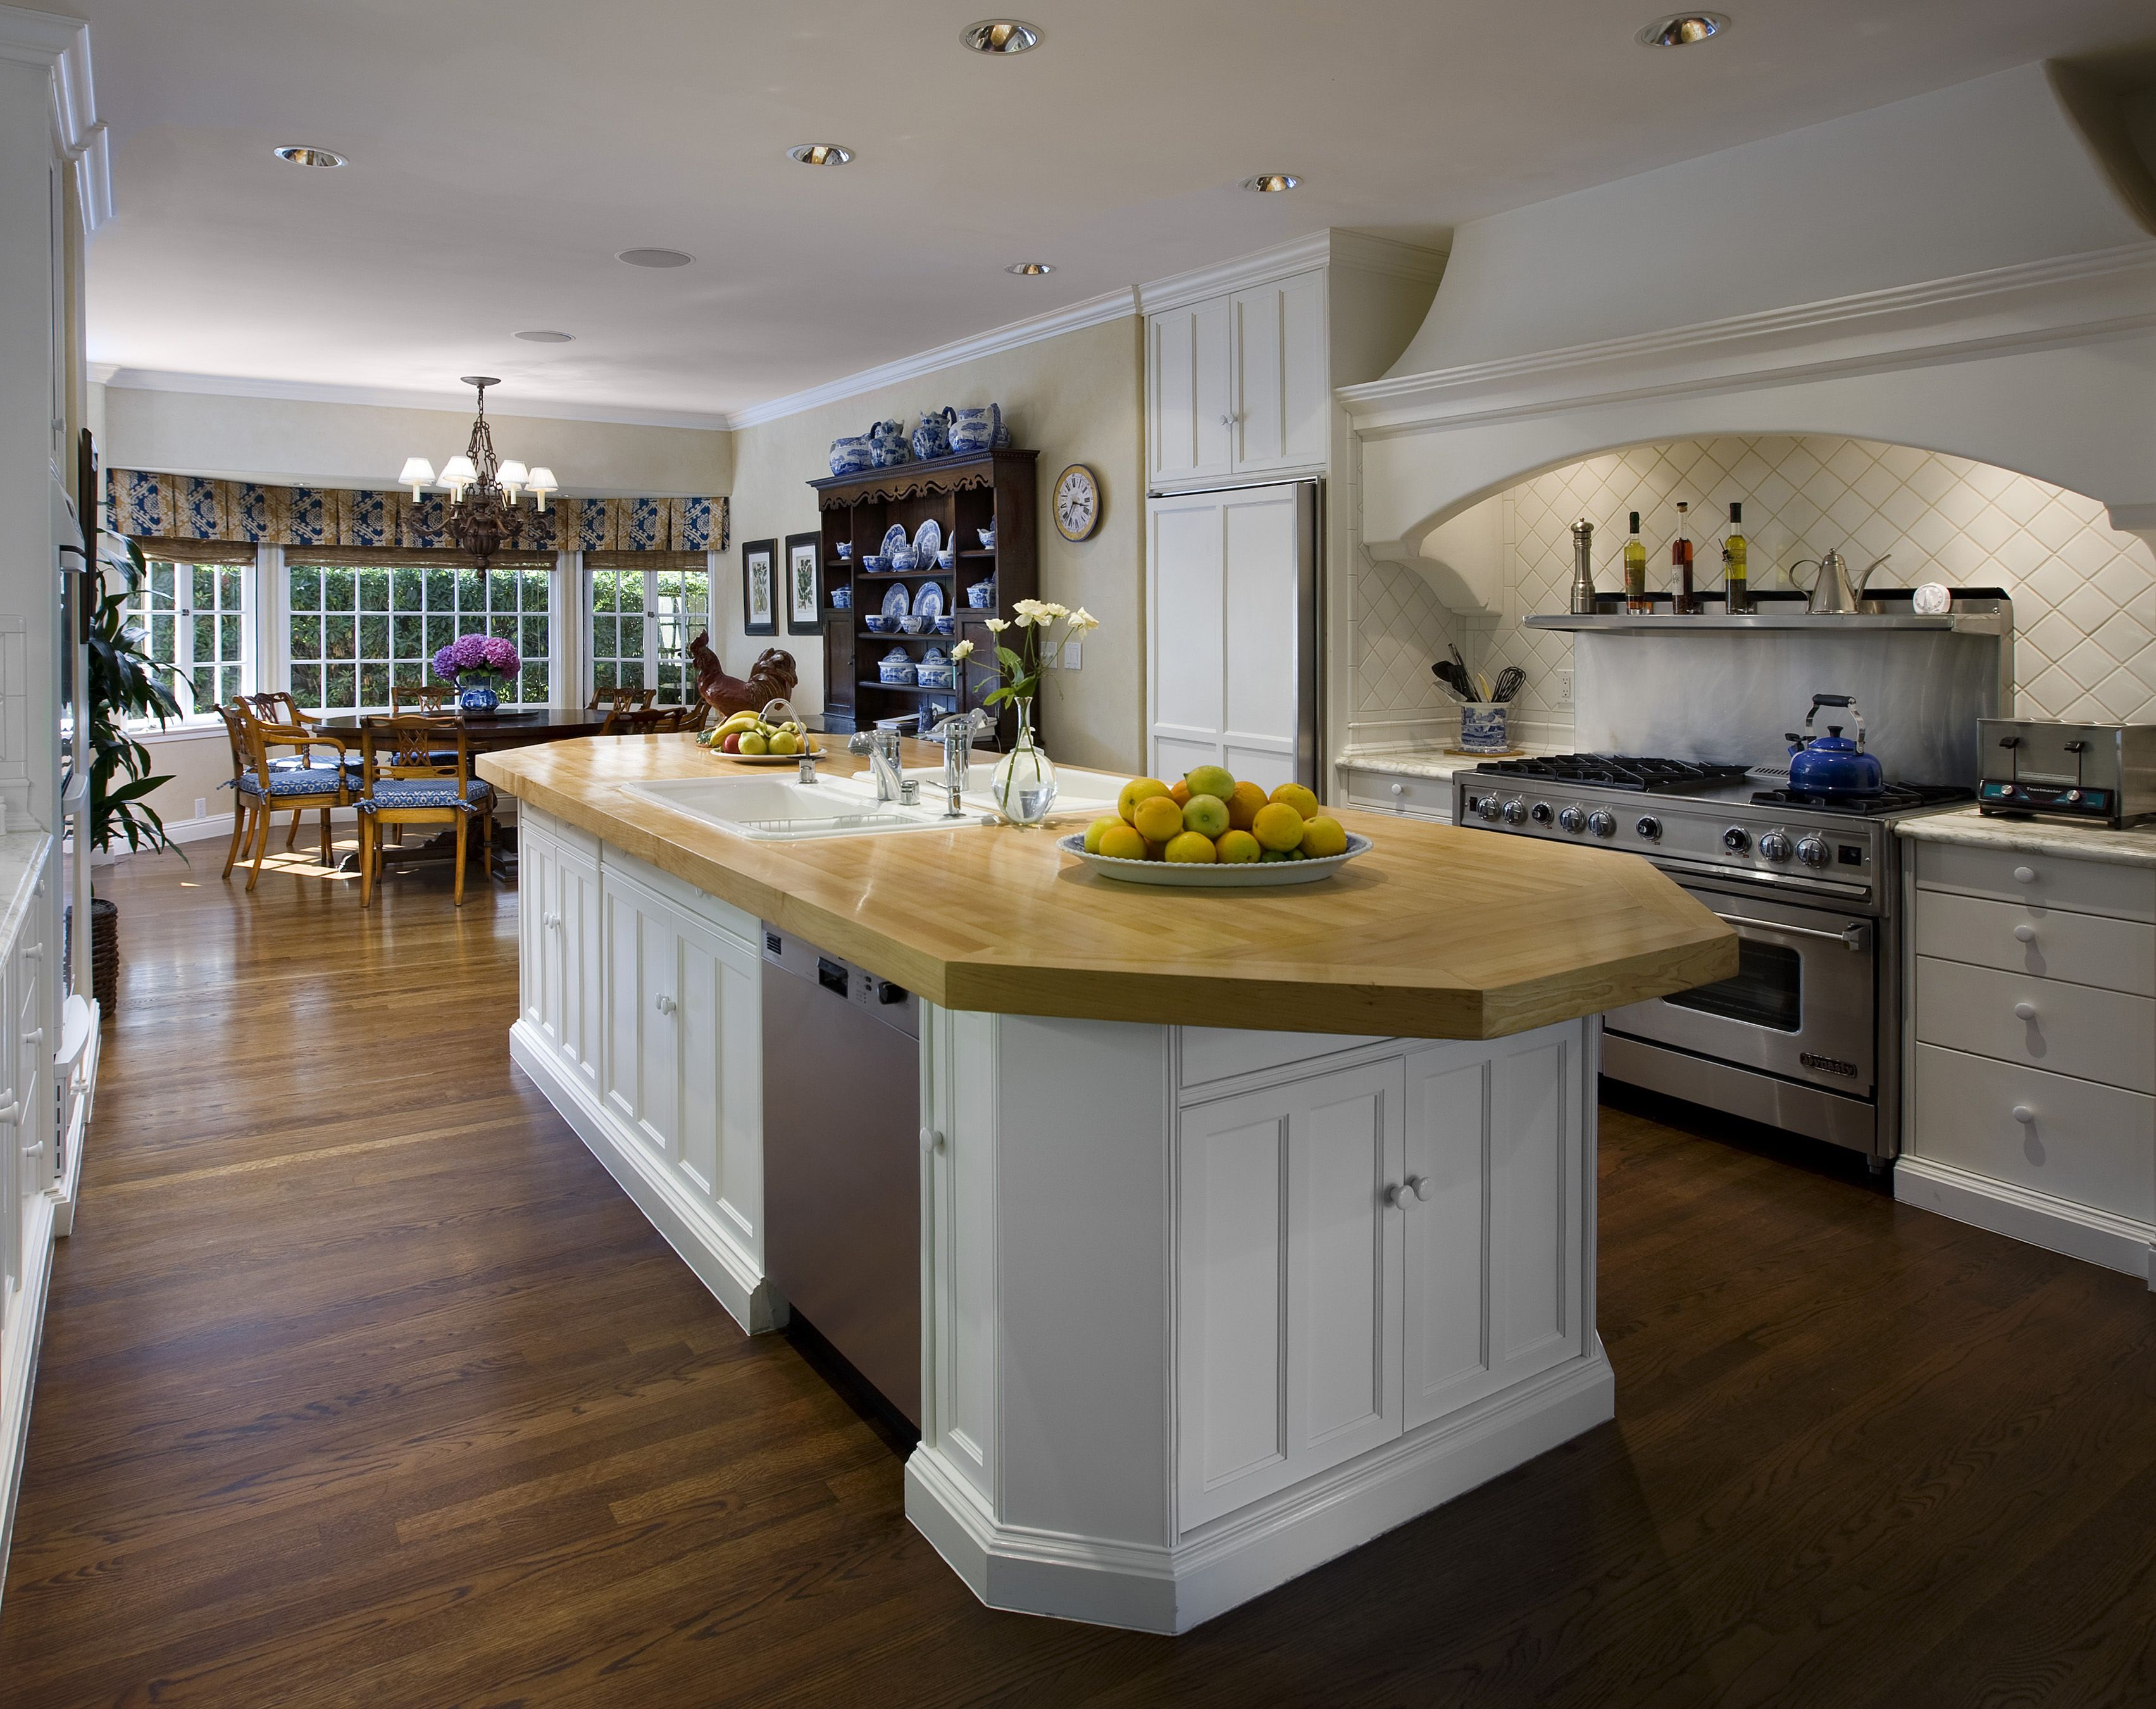 French Country Kitchen With Stylish Design